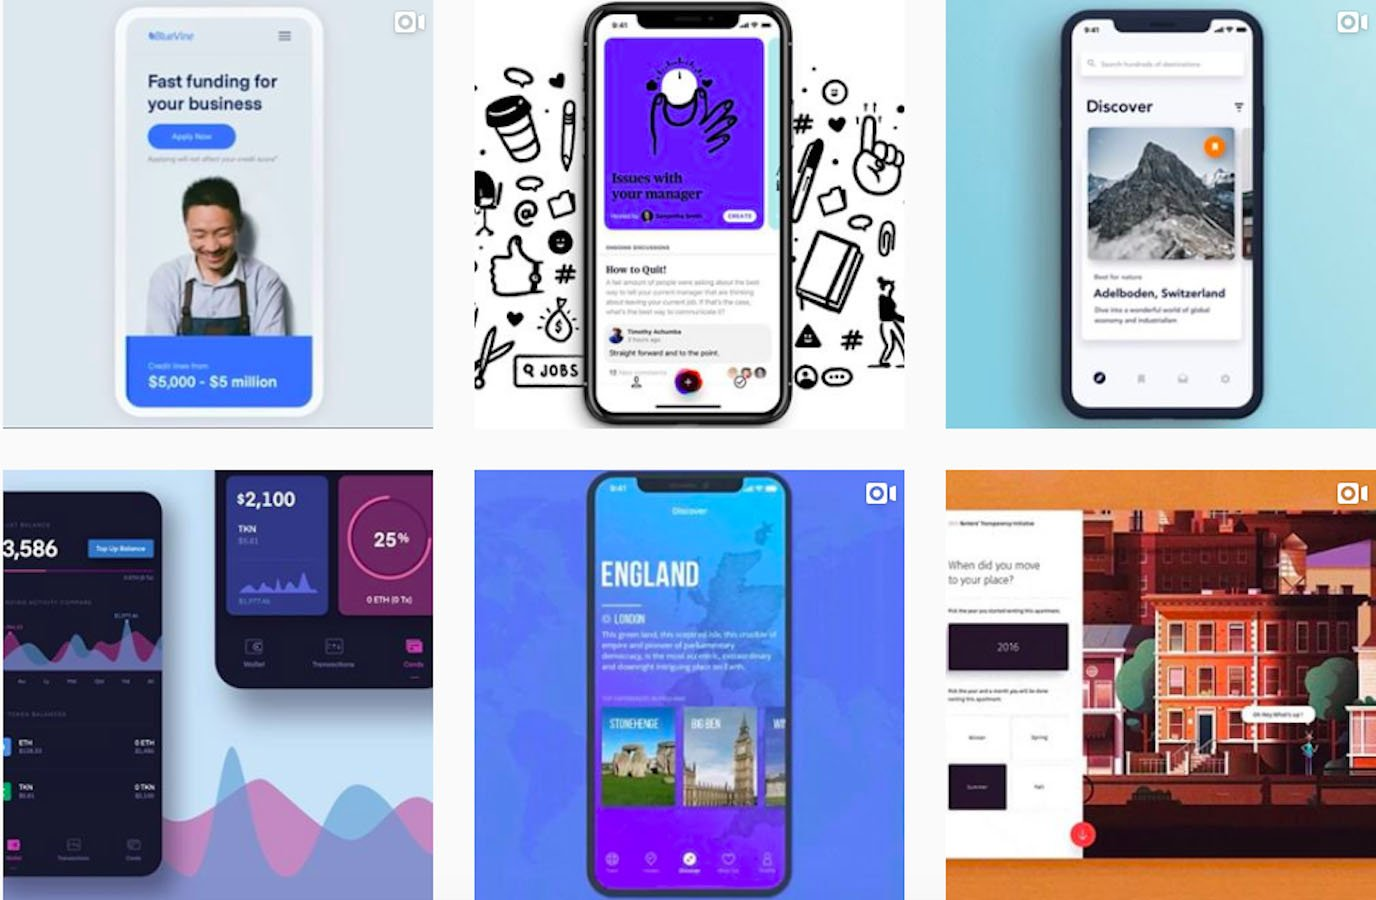 Web Design Inspiration: 110+ Accounts On Instagram and 10+ Best UX & Web Design Books in 2020 - gifux